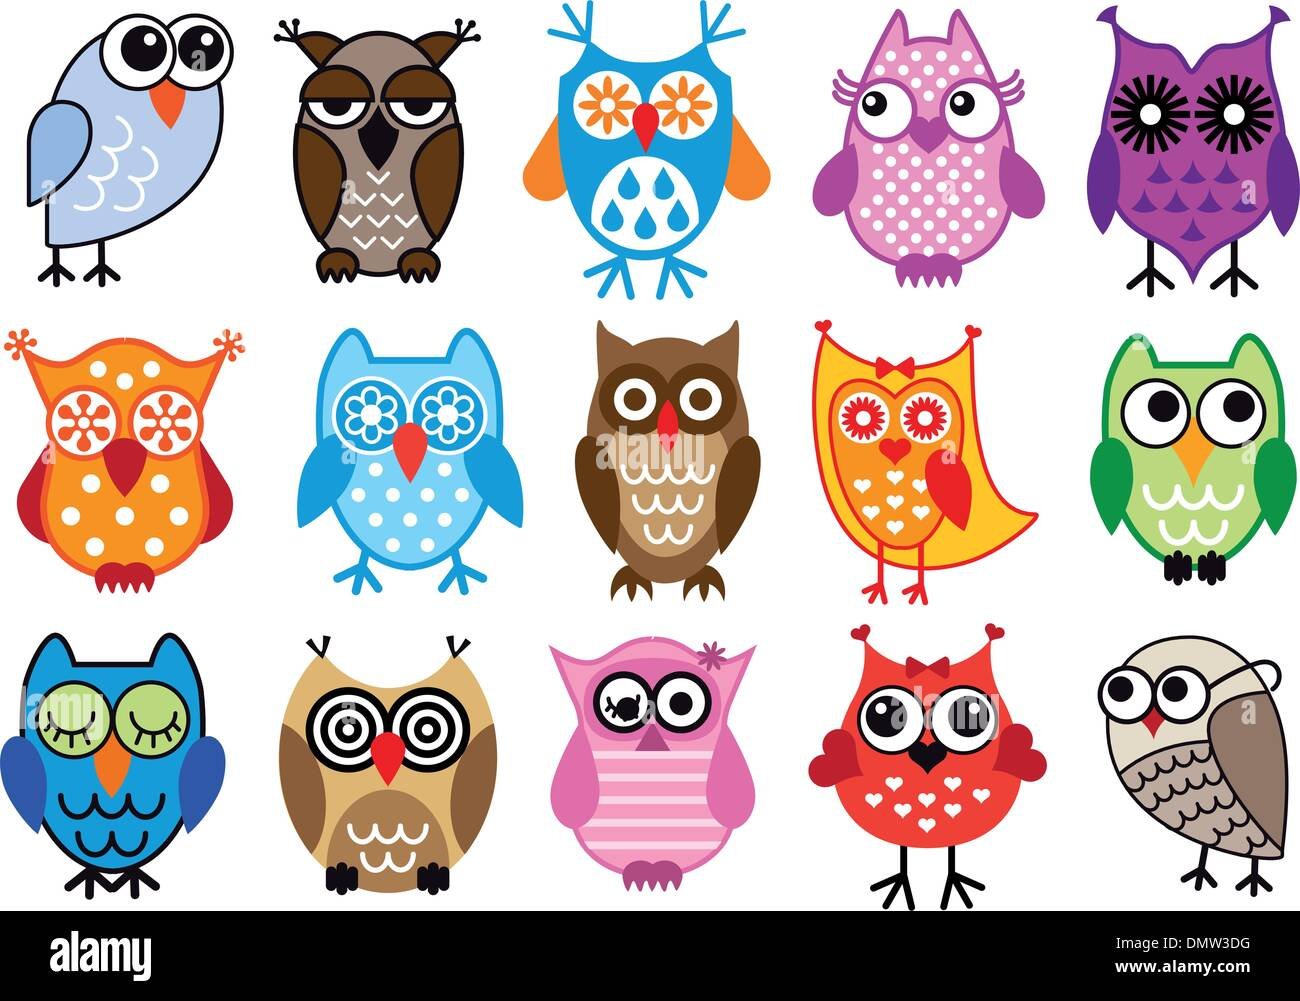 vector owls - Stock Image